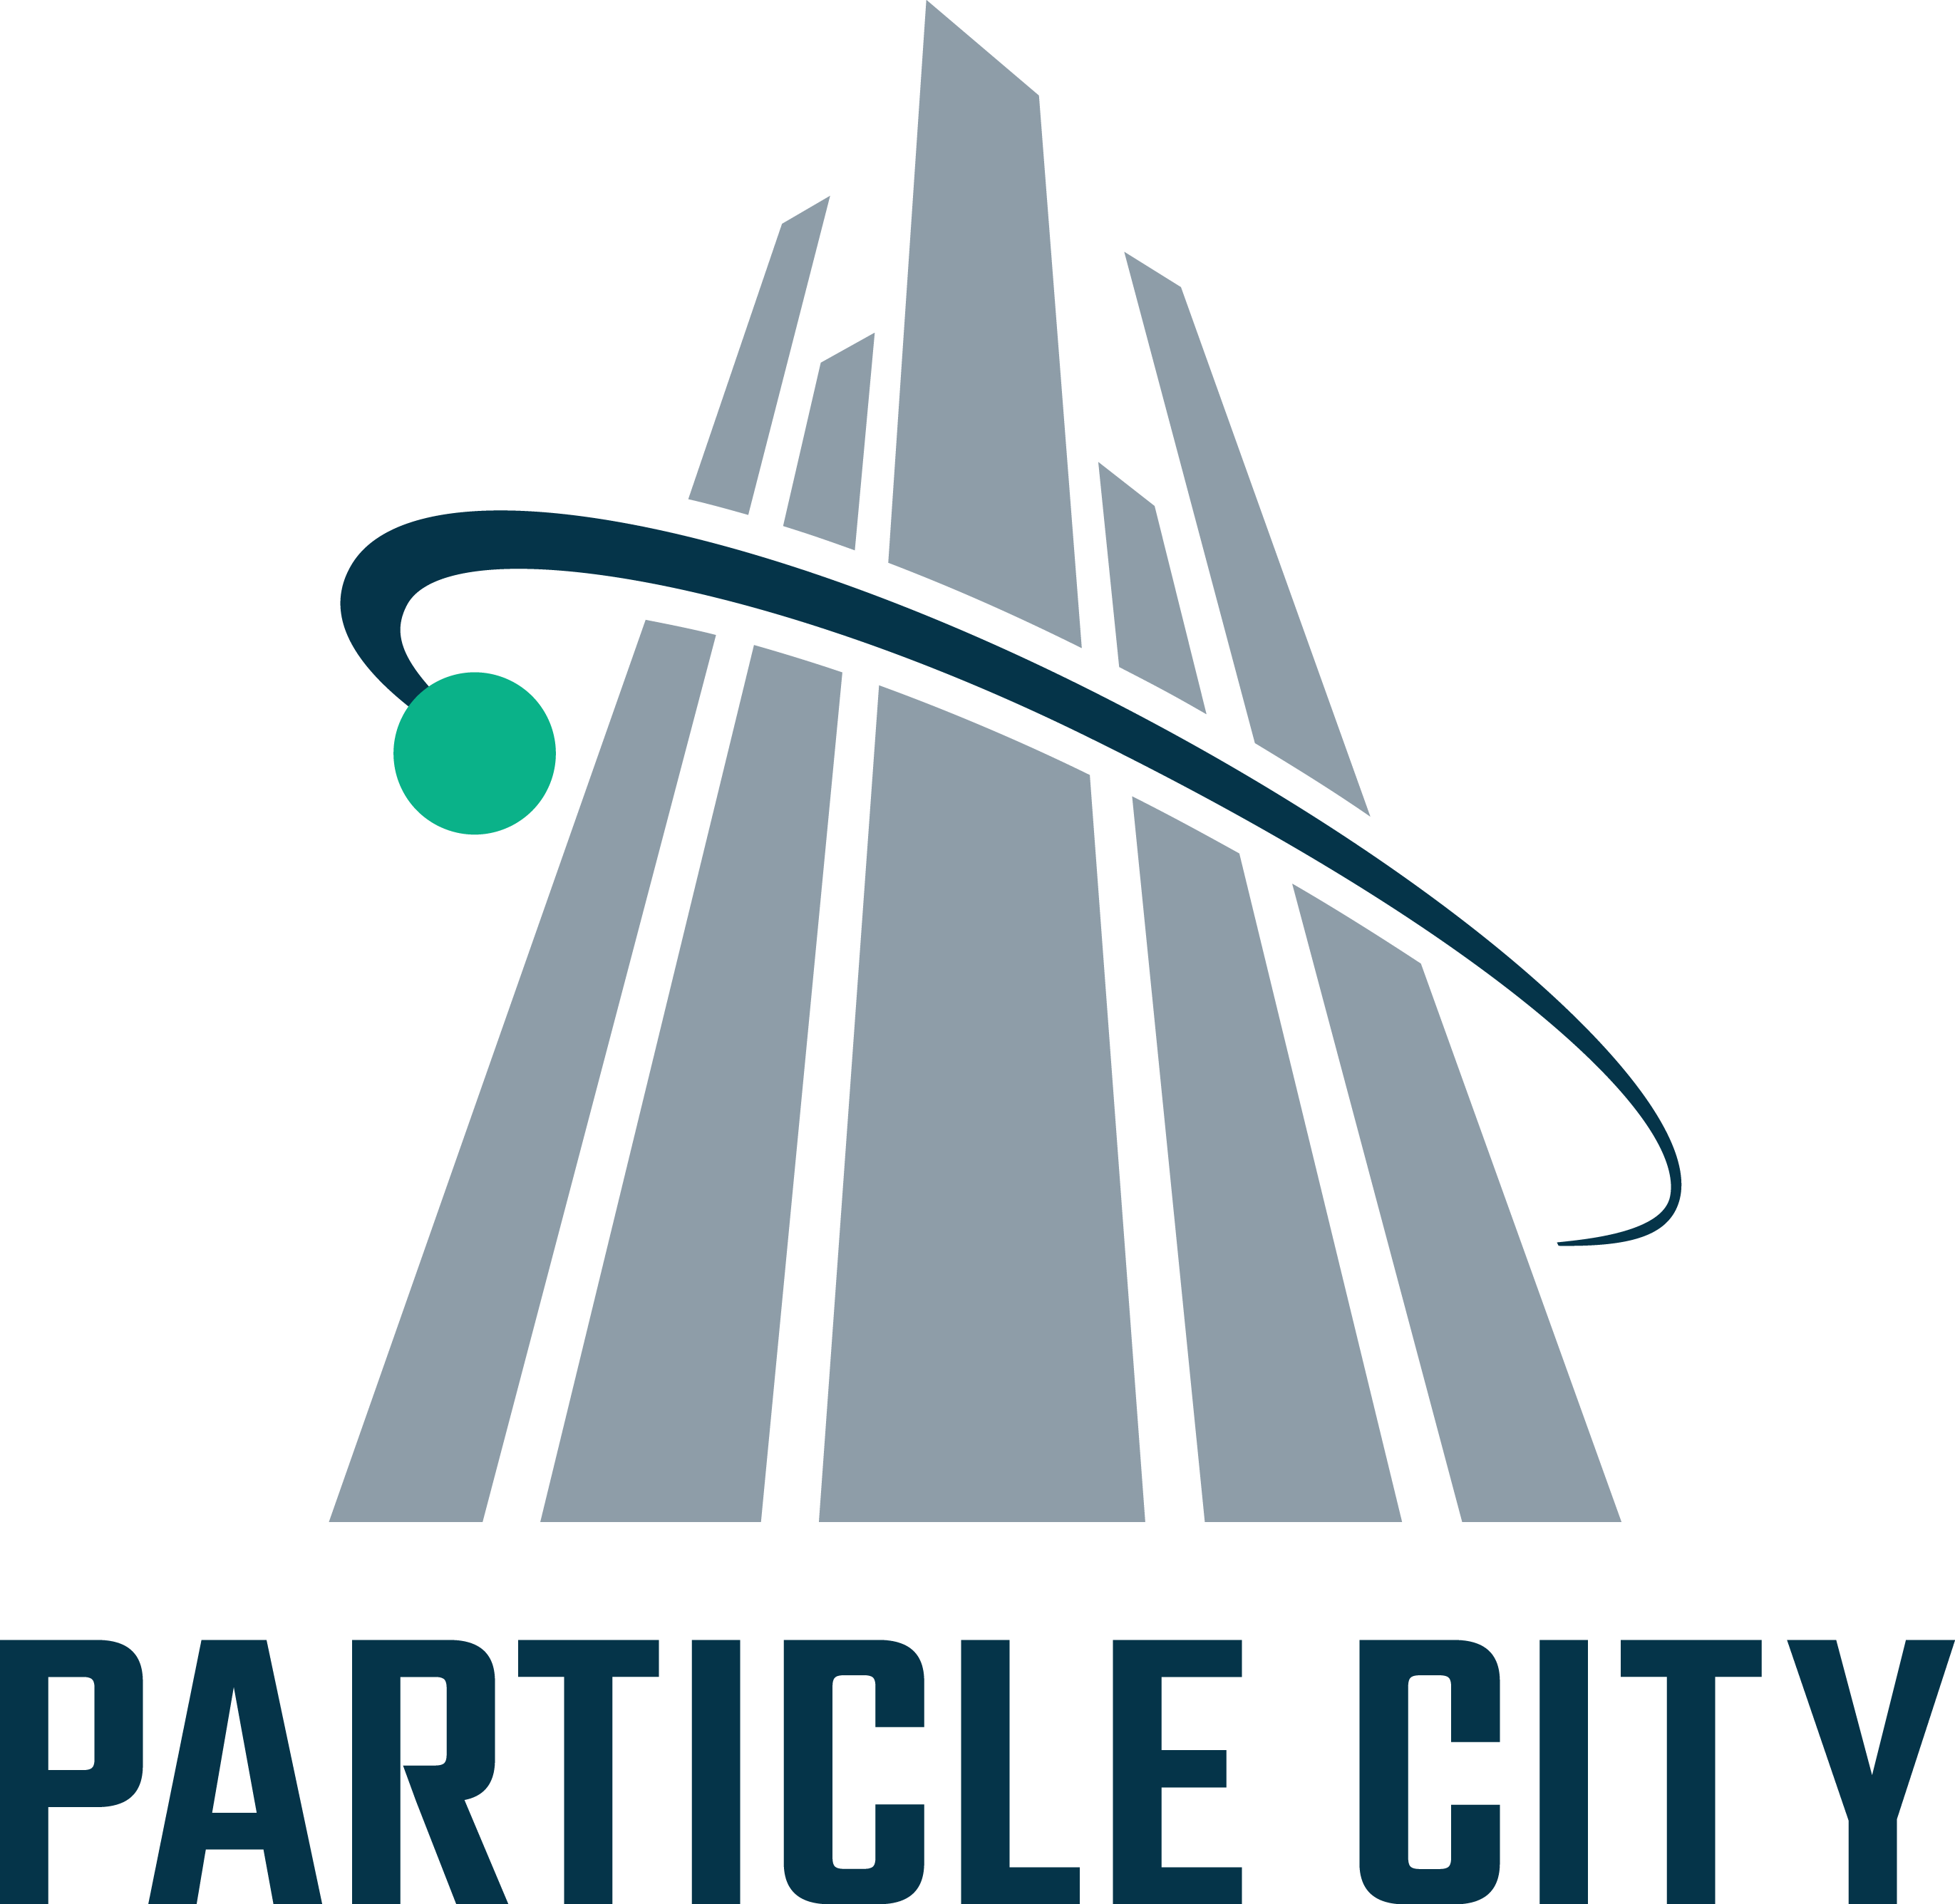 Particle City's logo